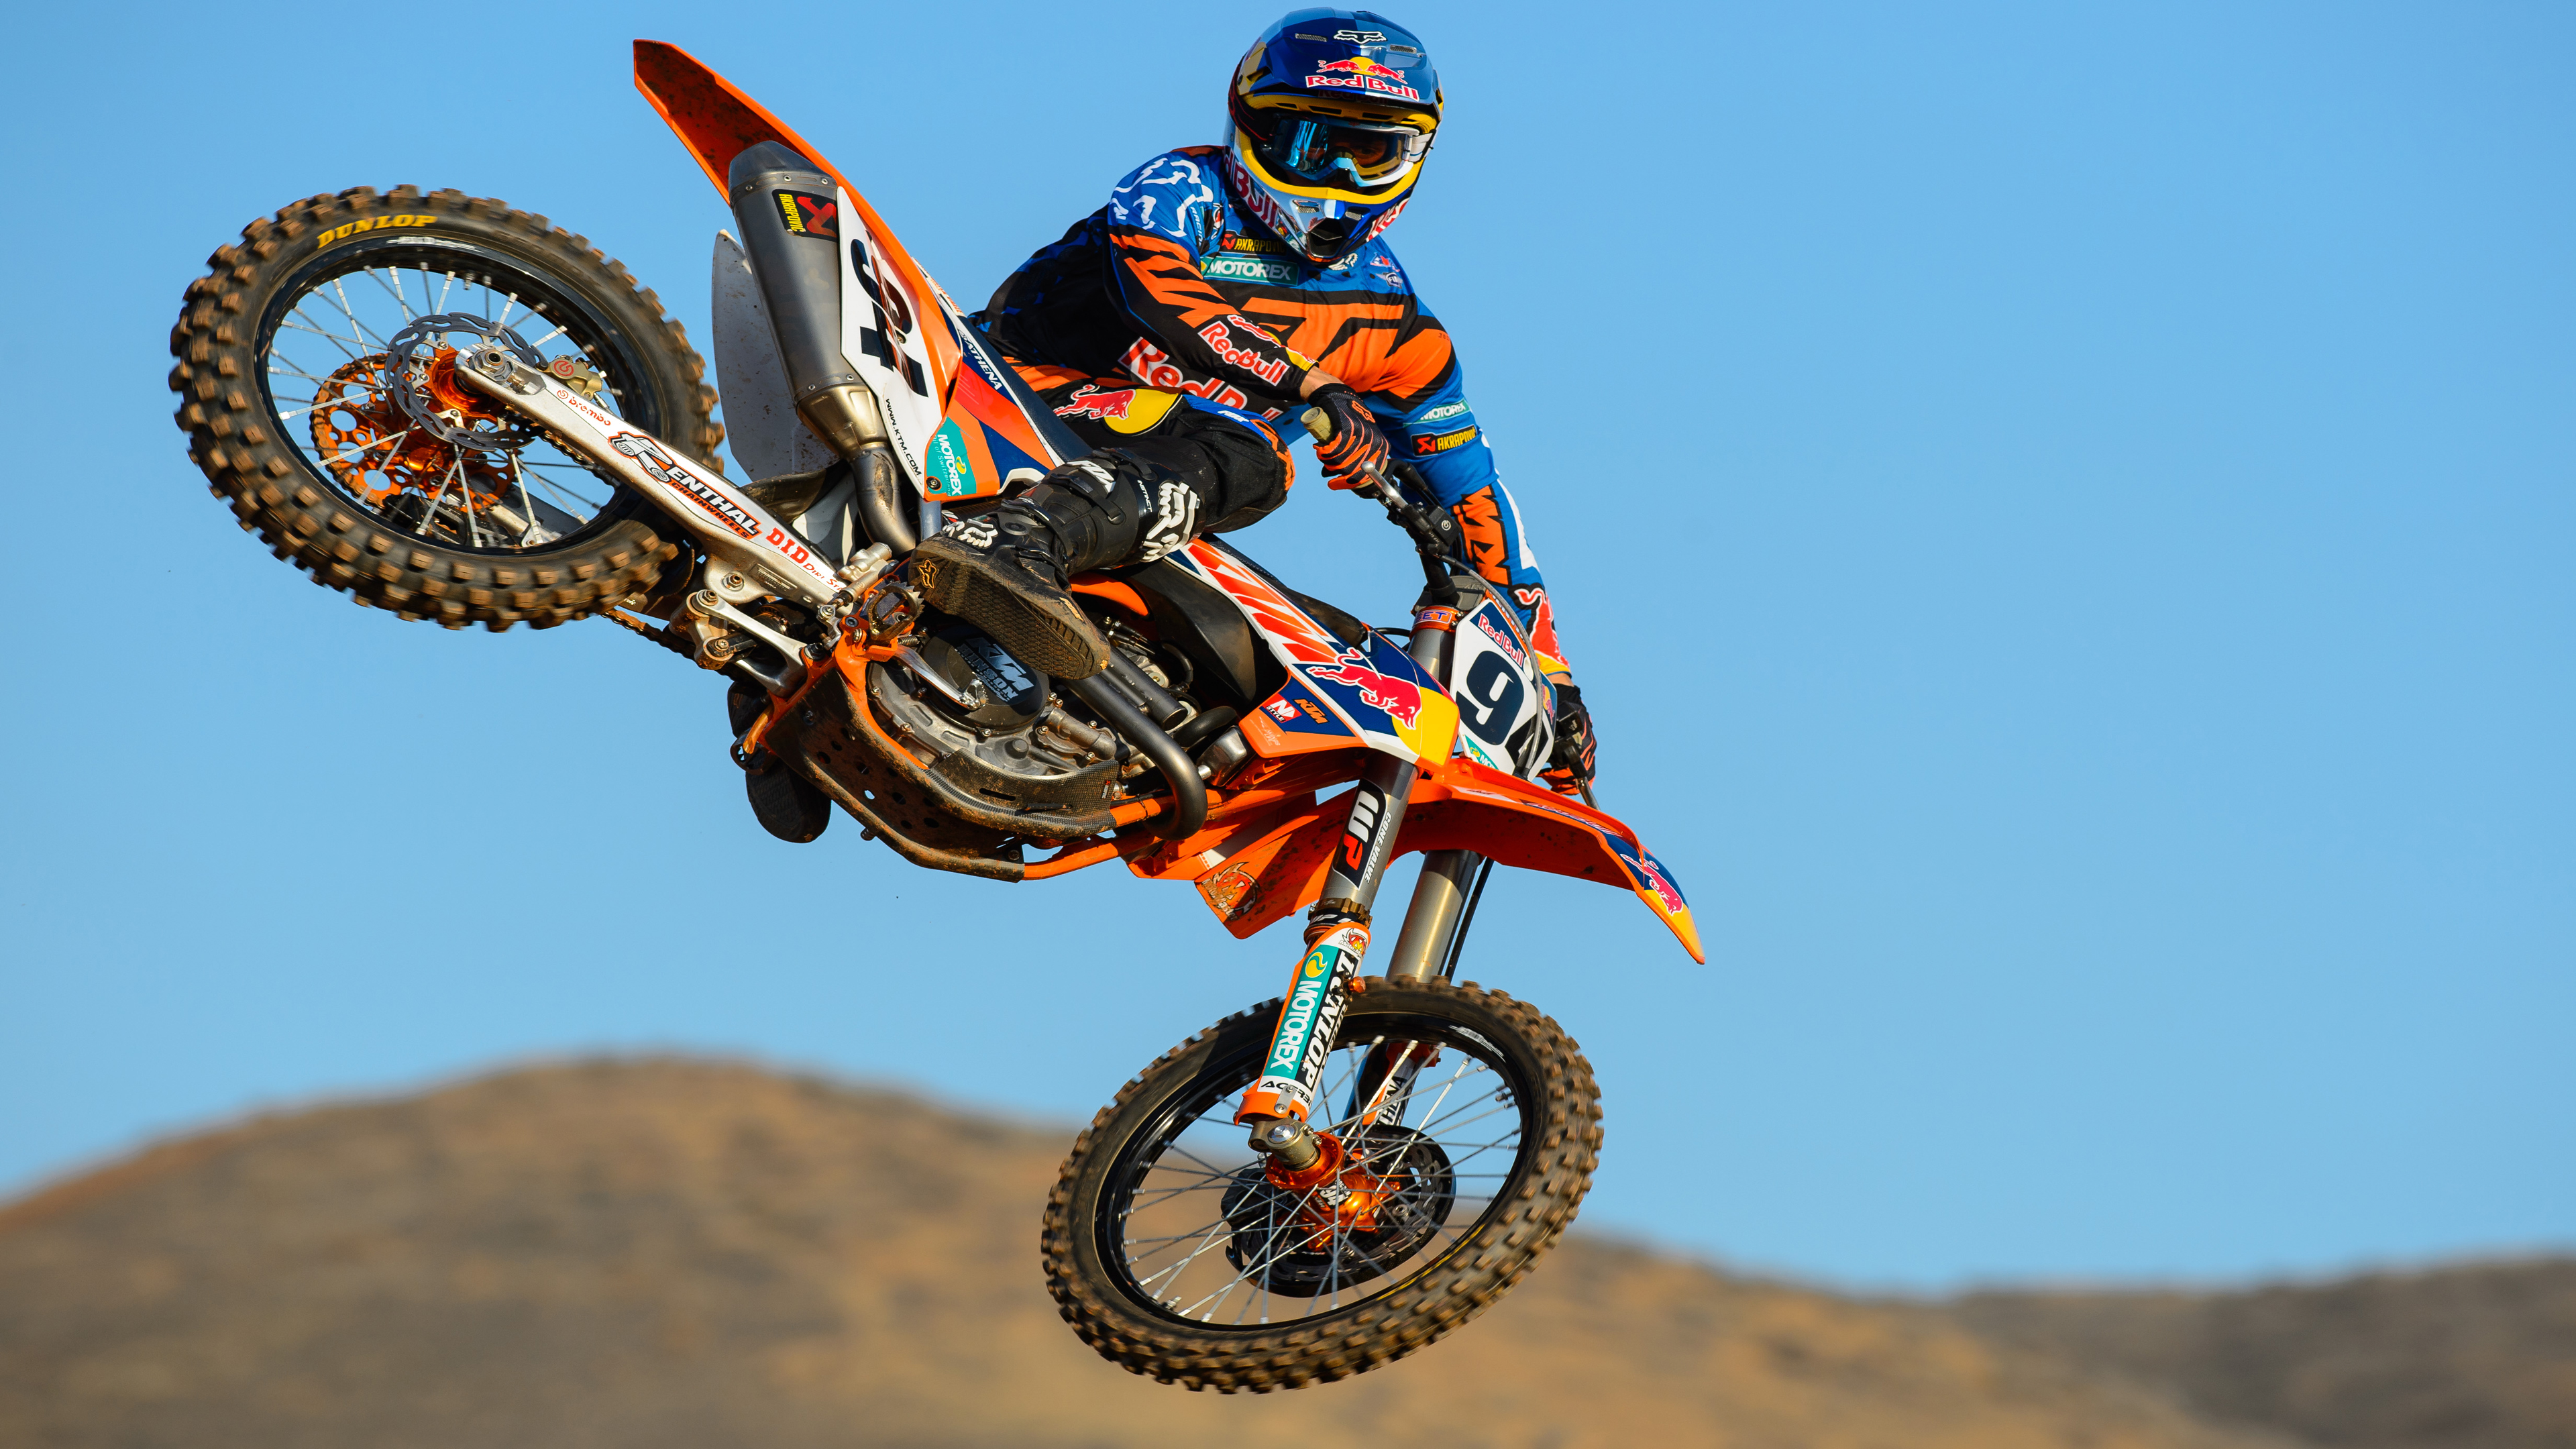 Motocross Ktm HD Wallpapers 3840x2160